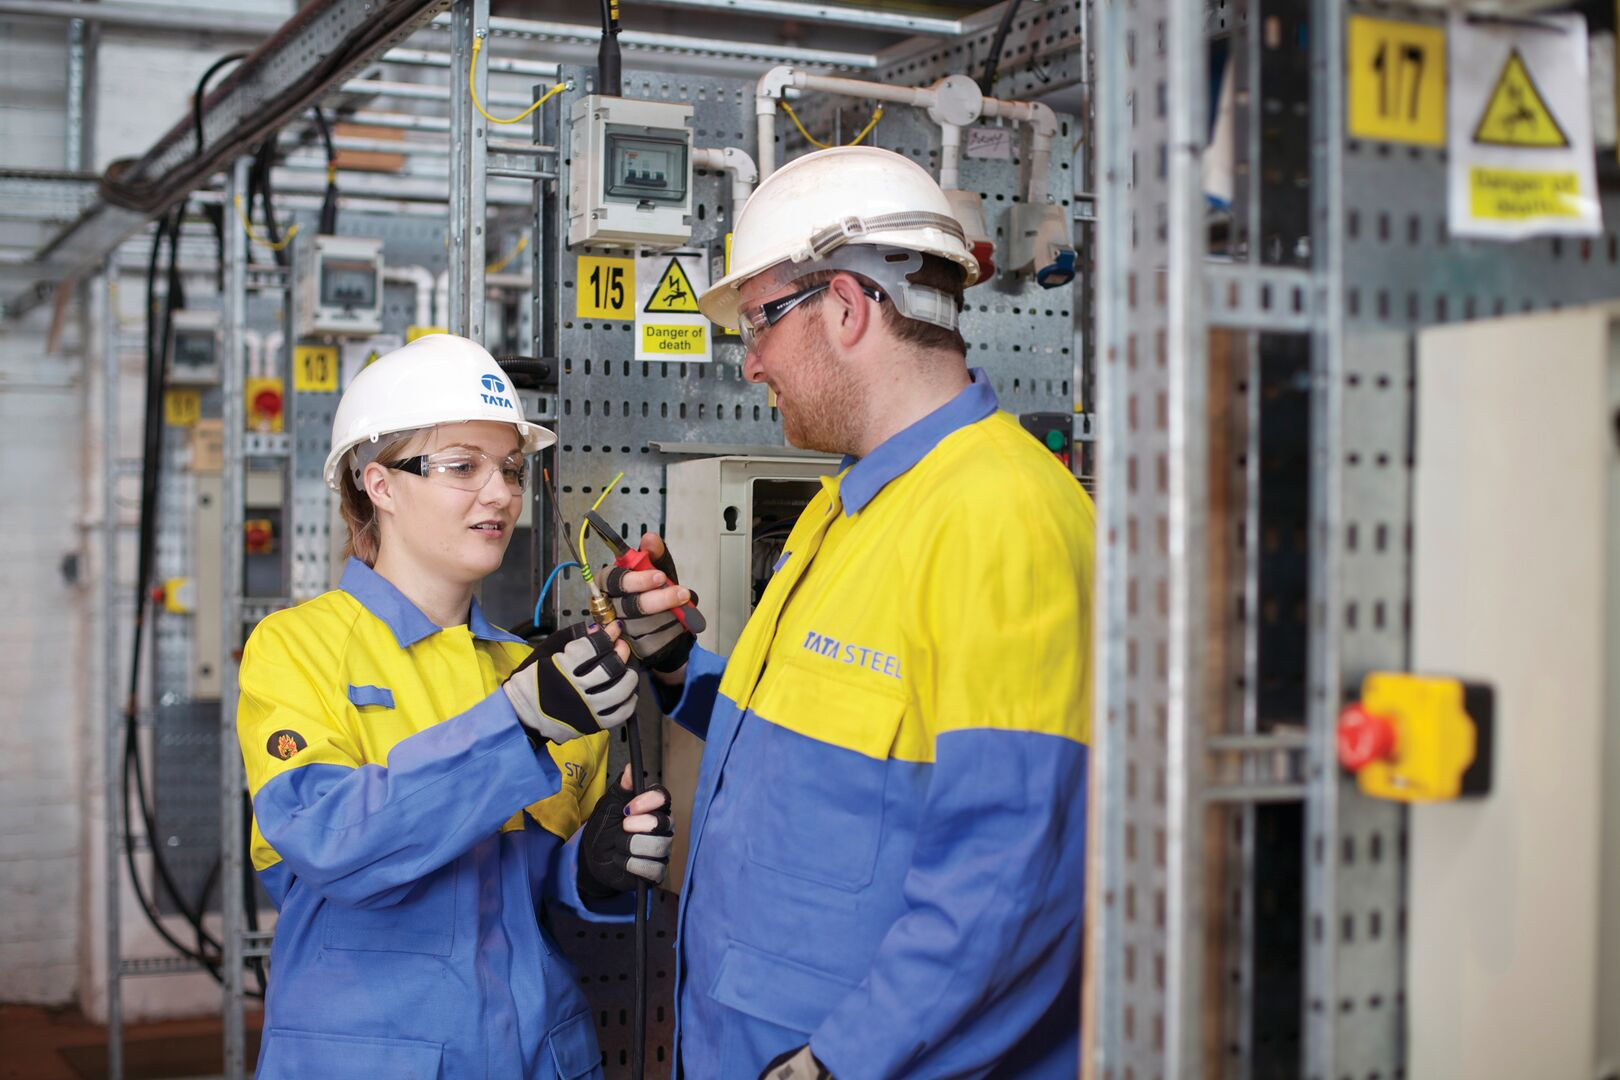 Tata Steel Apprentice UK